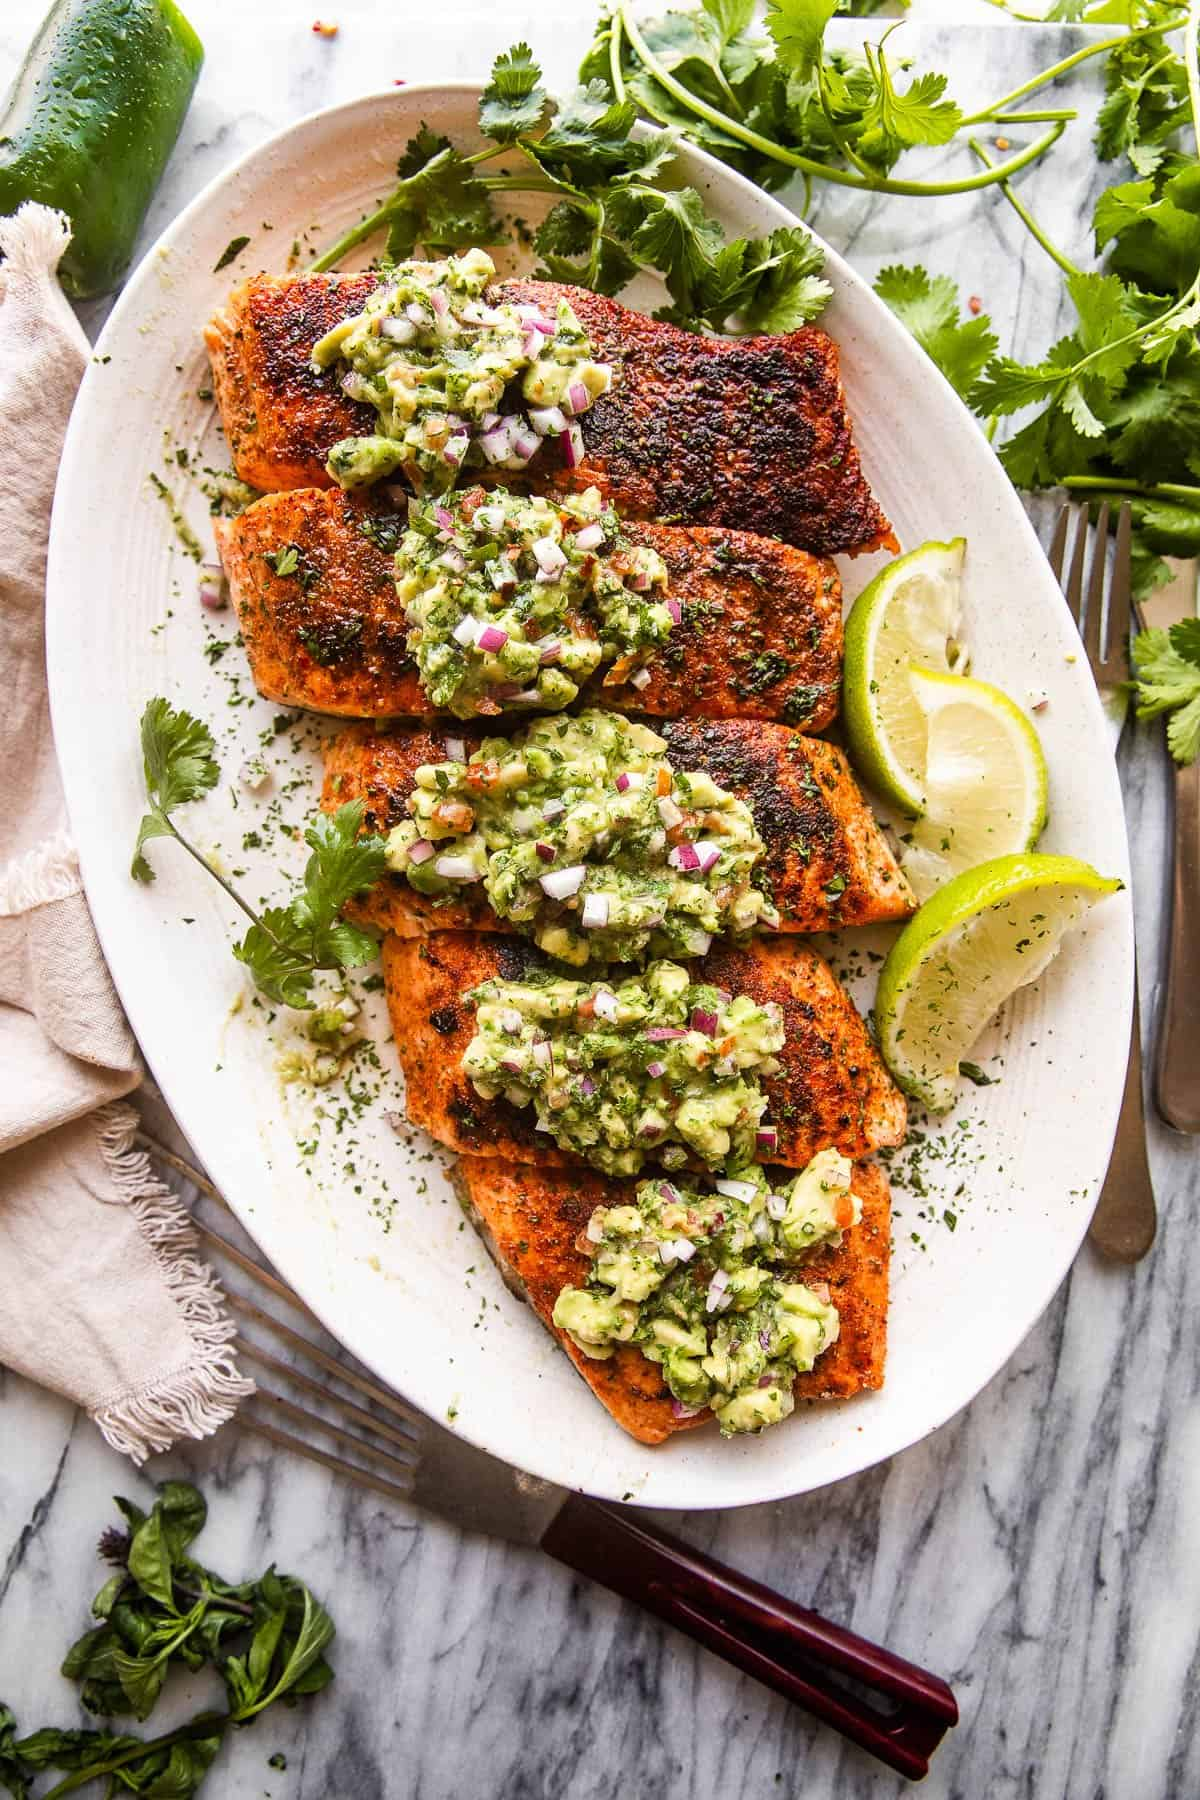 overhead shot of a large plate with grilled salmon fillets topped with avocado salsa